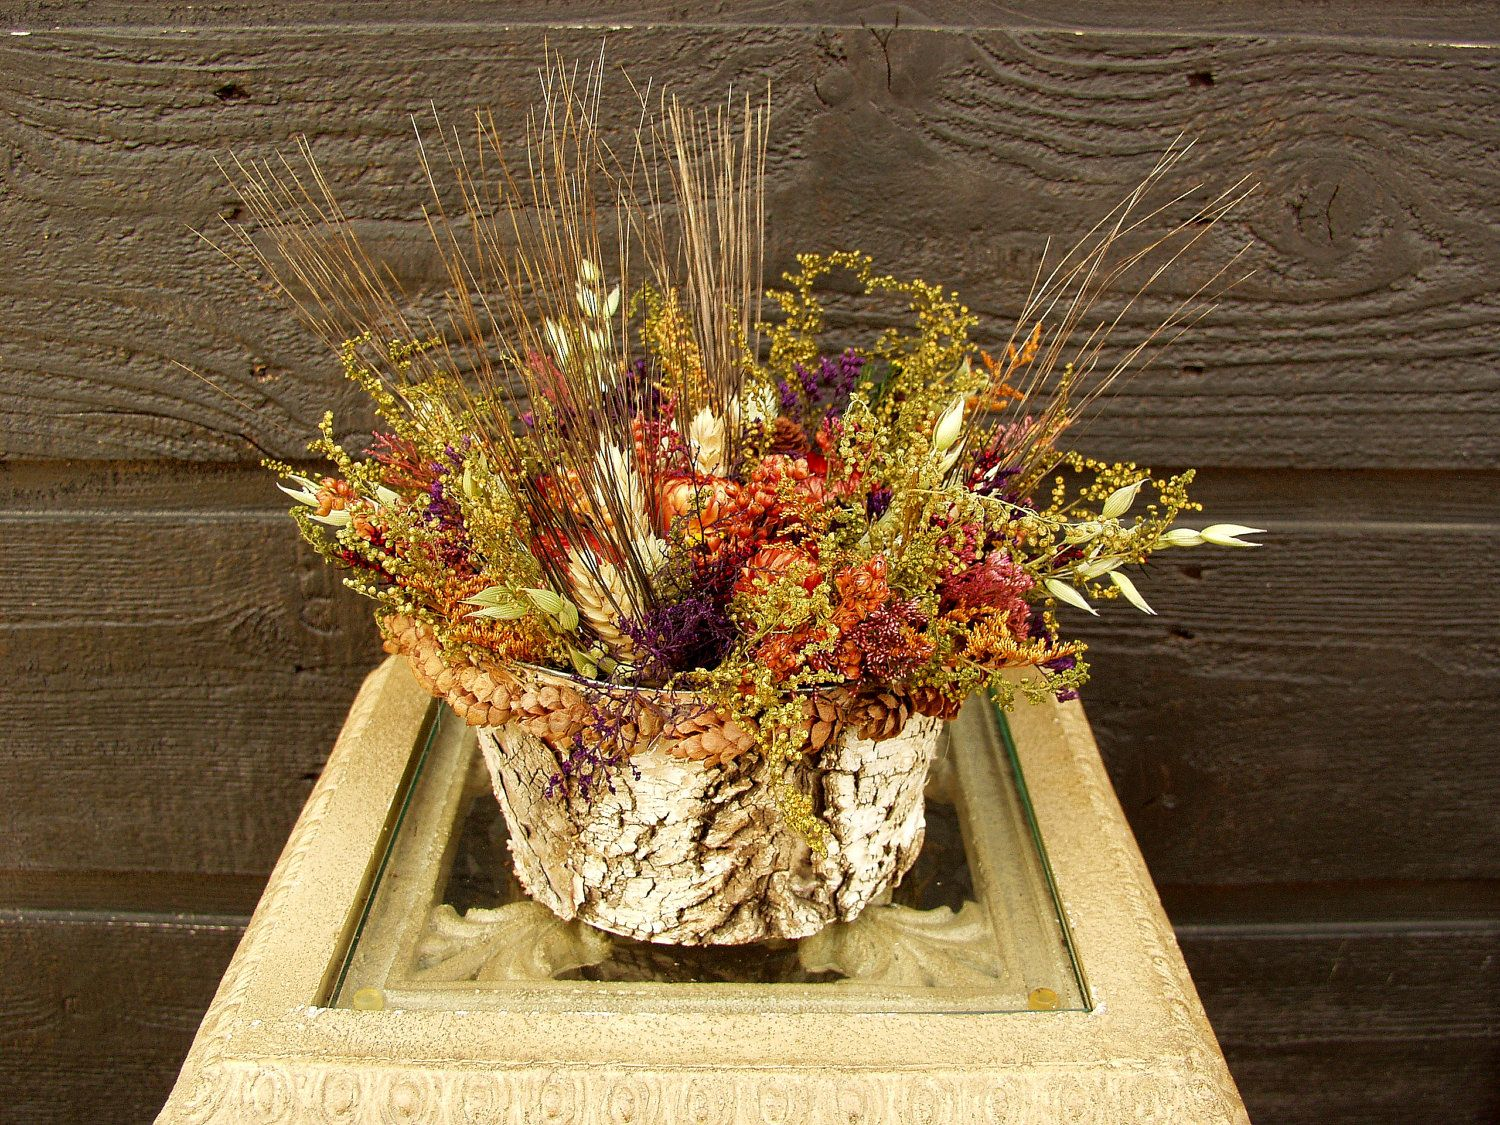 Broom Corn Dried Broom Corn Floral Supplies Great For Fall Decorations Or Wreaths Broom Corn Floral Supplies Dried Flower Arrangements